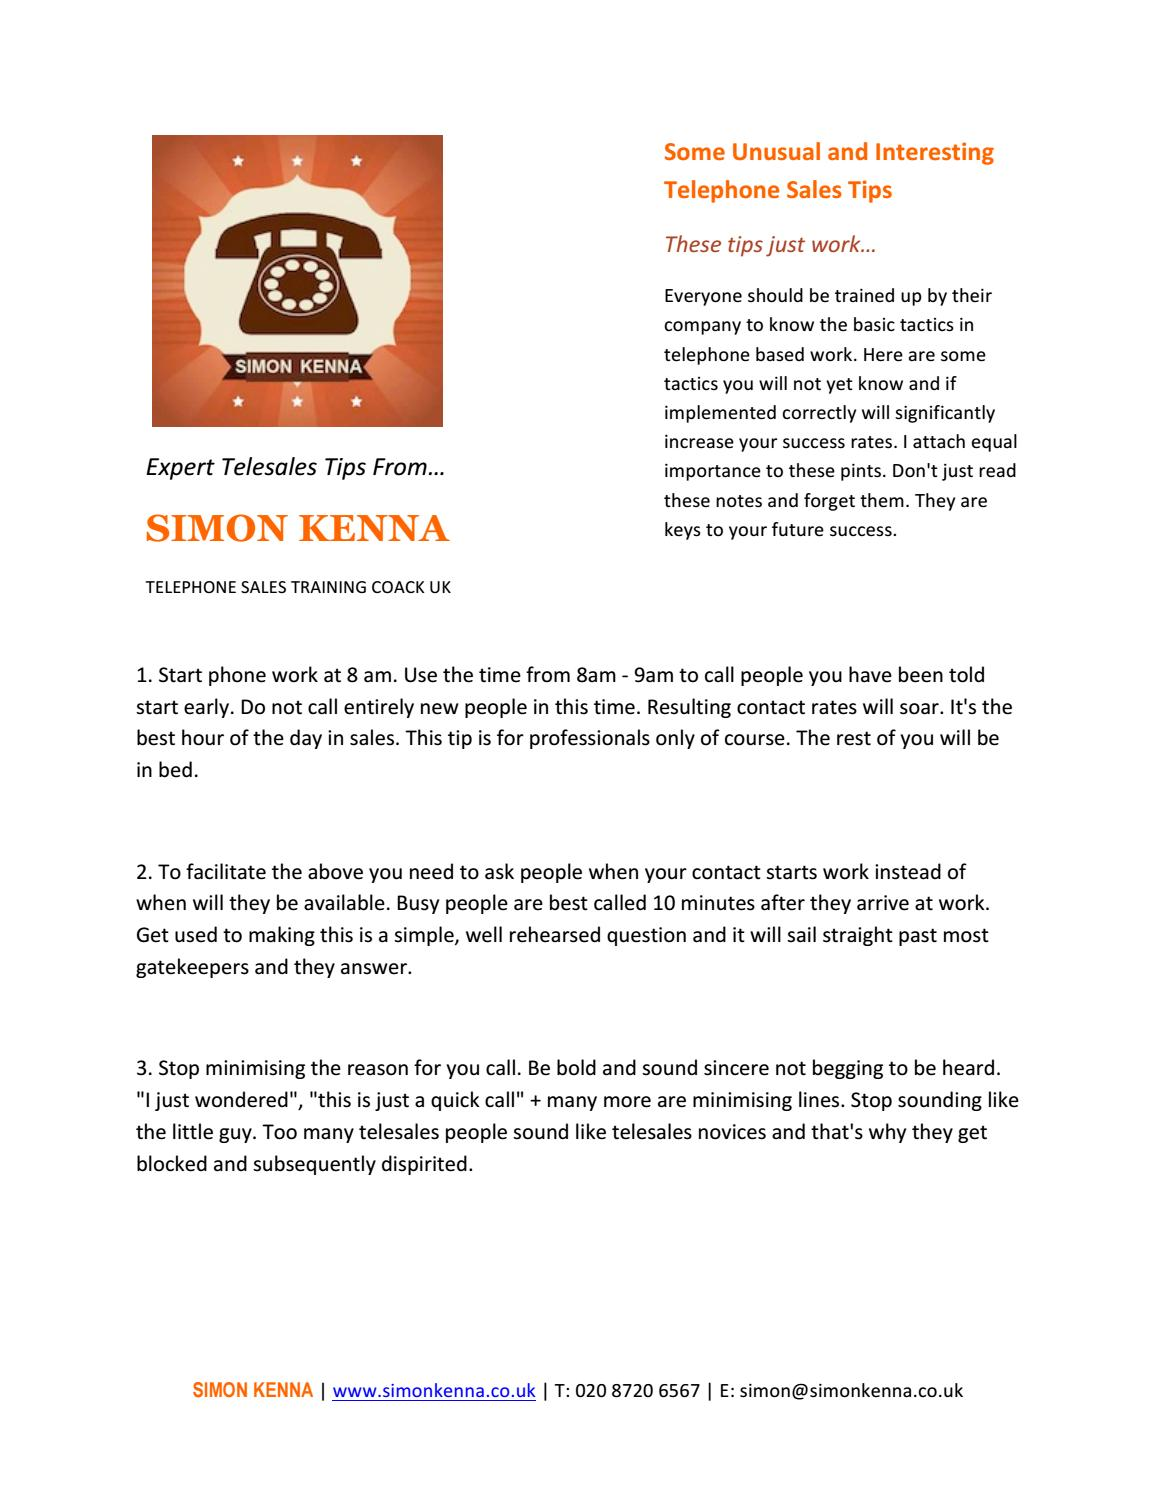 Some unusual and interesting telephone sales tips by ronanmarho - issuu